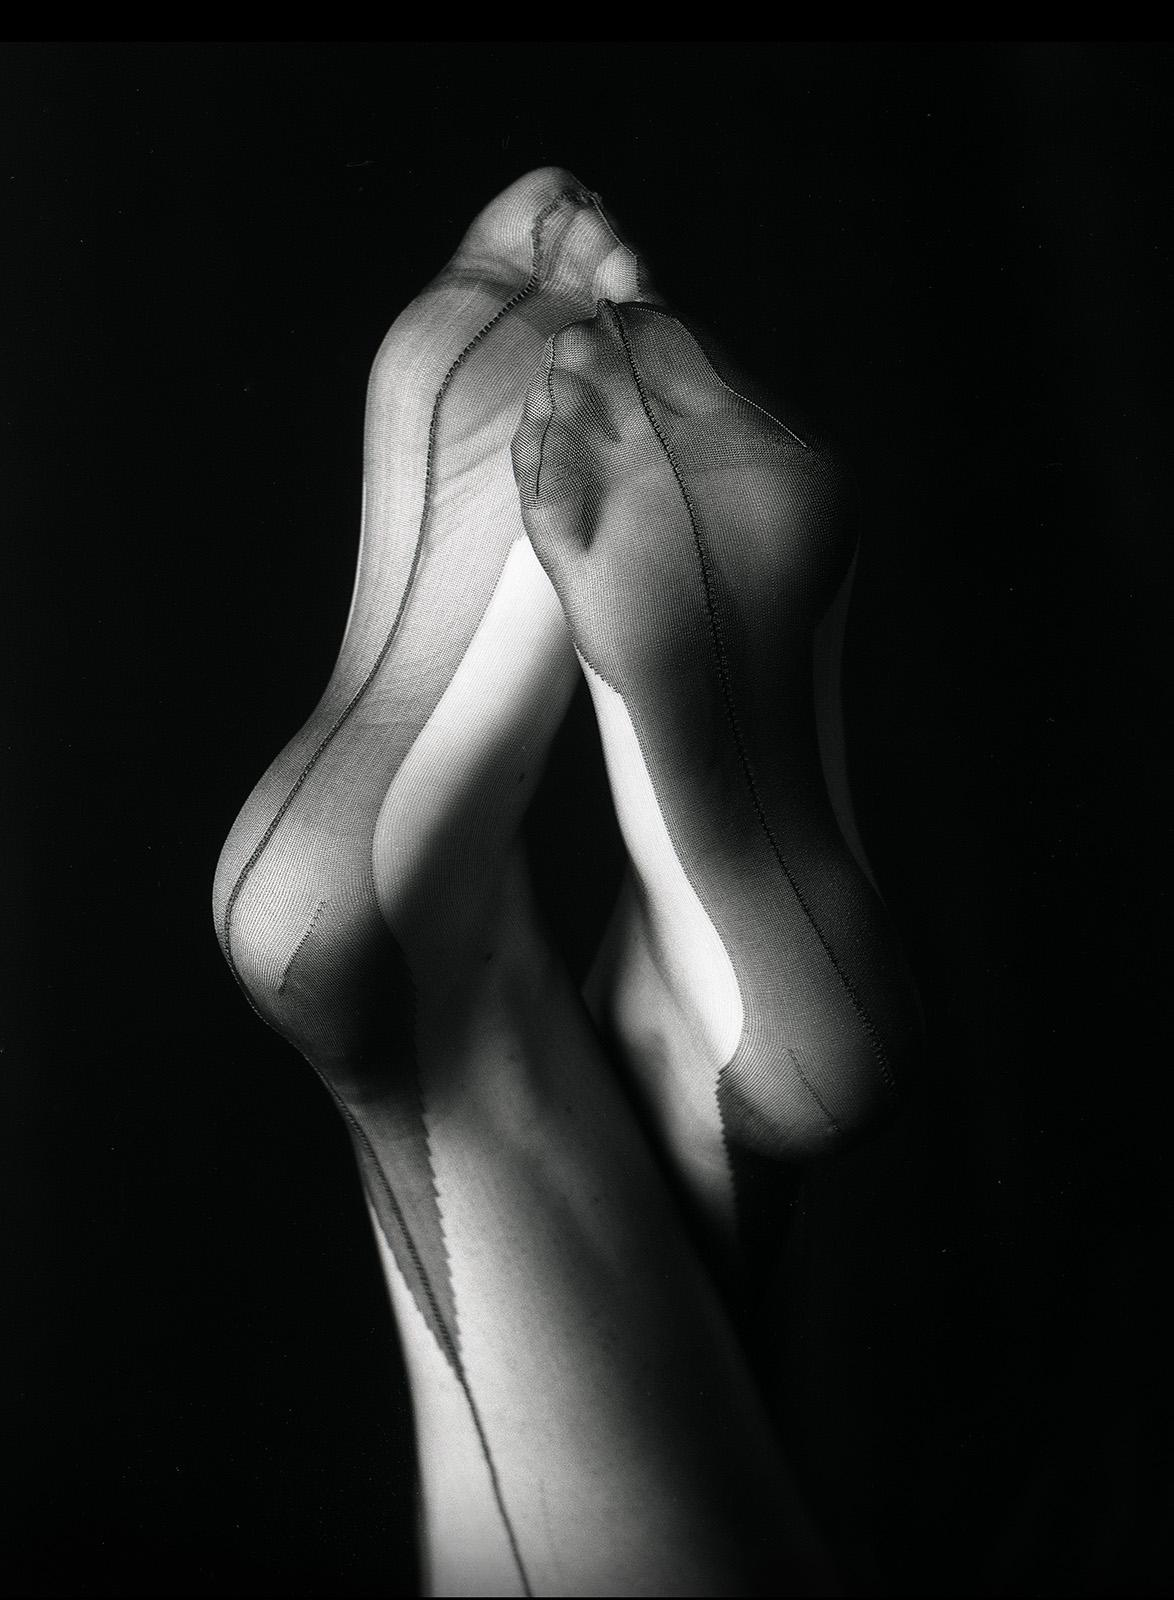 Put Your Feet Up - Signed limited edition archival pigment print by Geoff Halpin